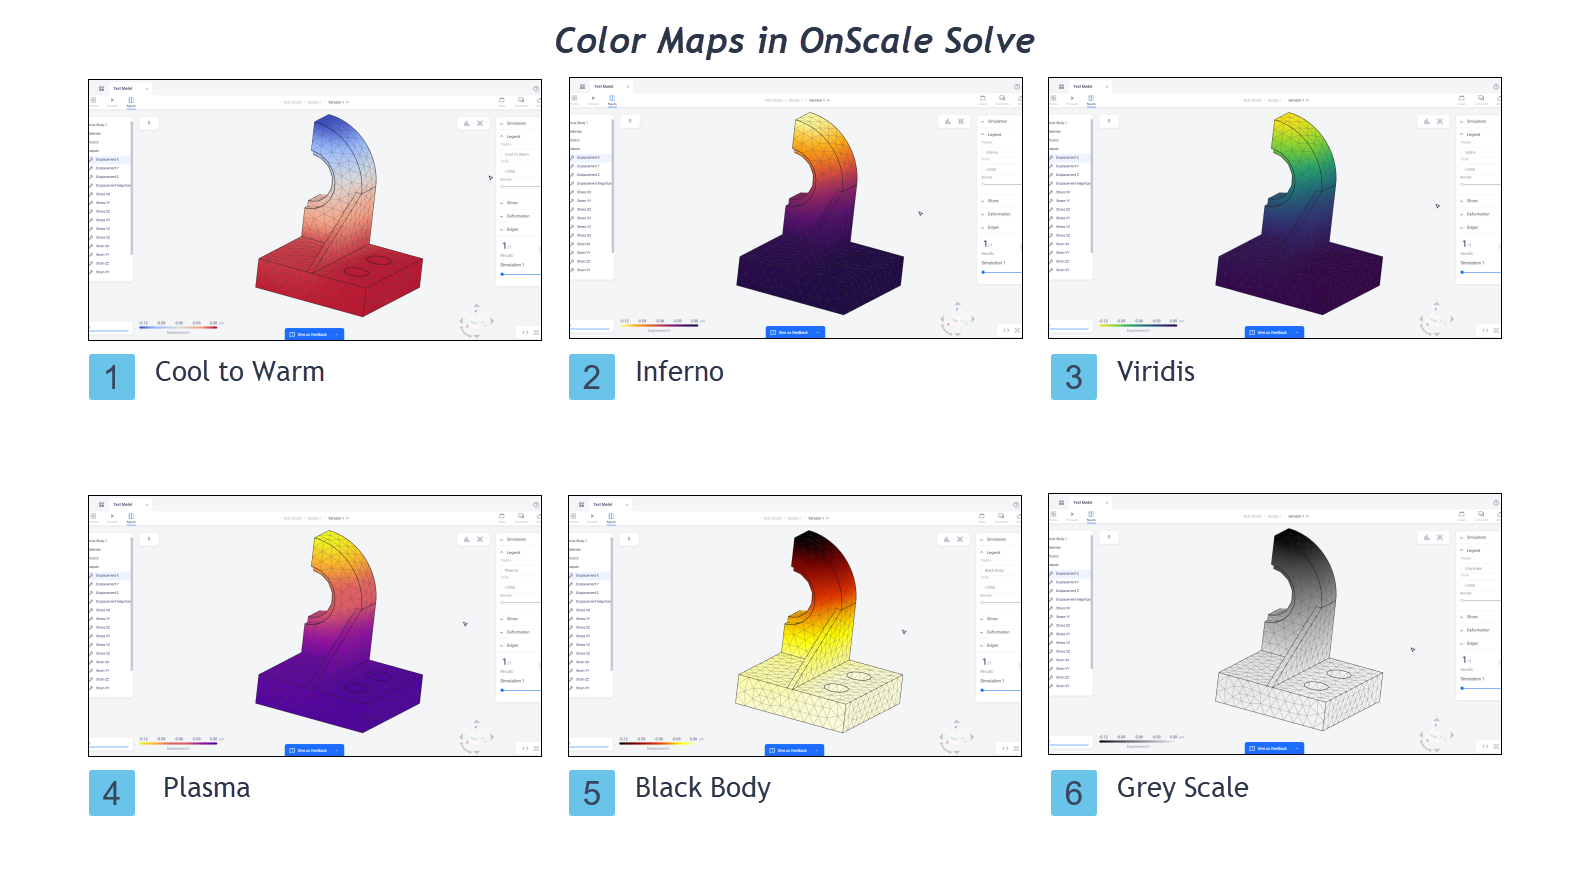 OnScale Solve Color Maps